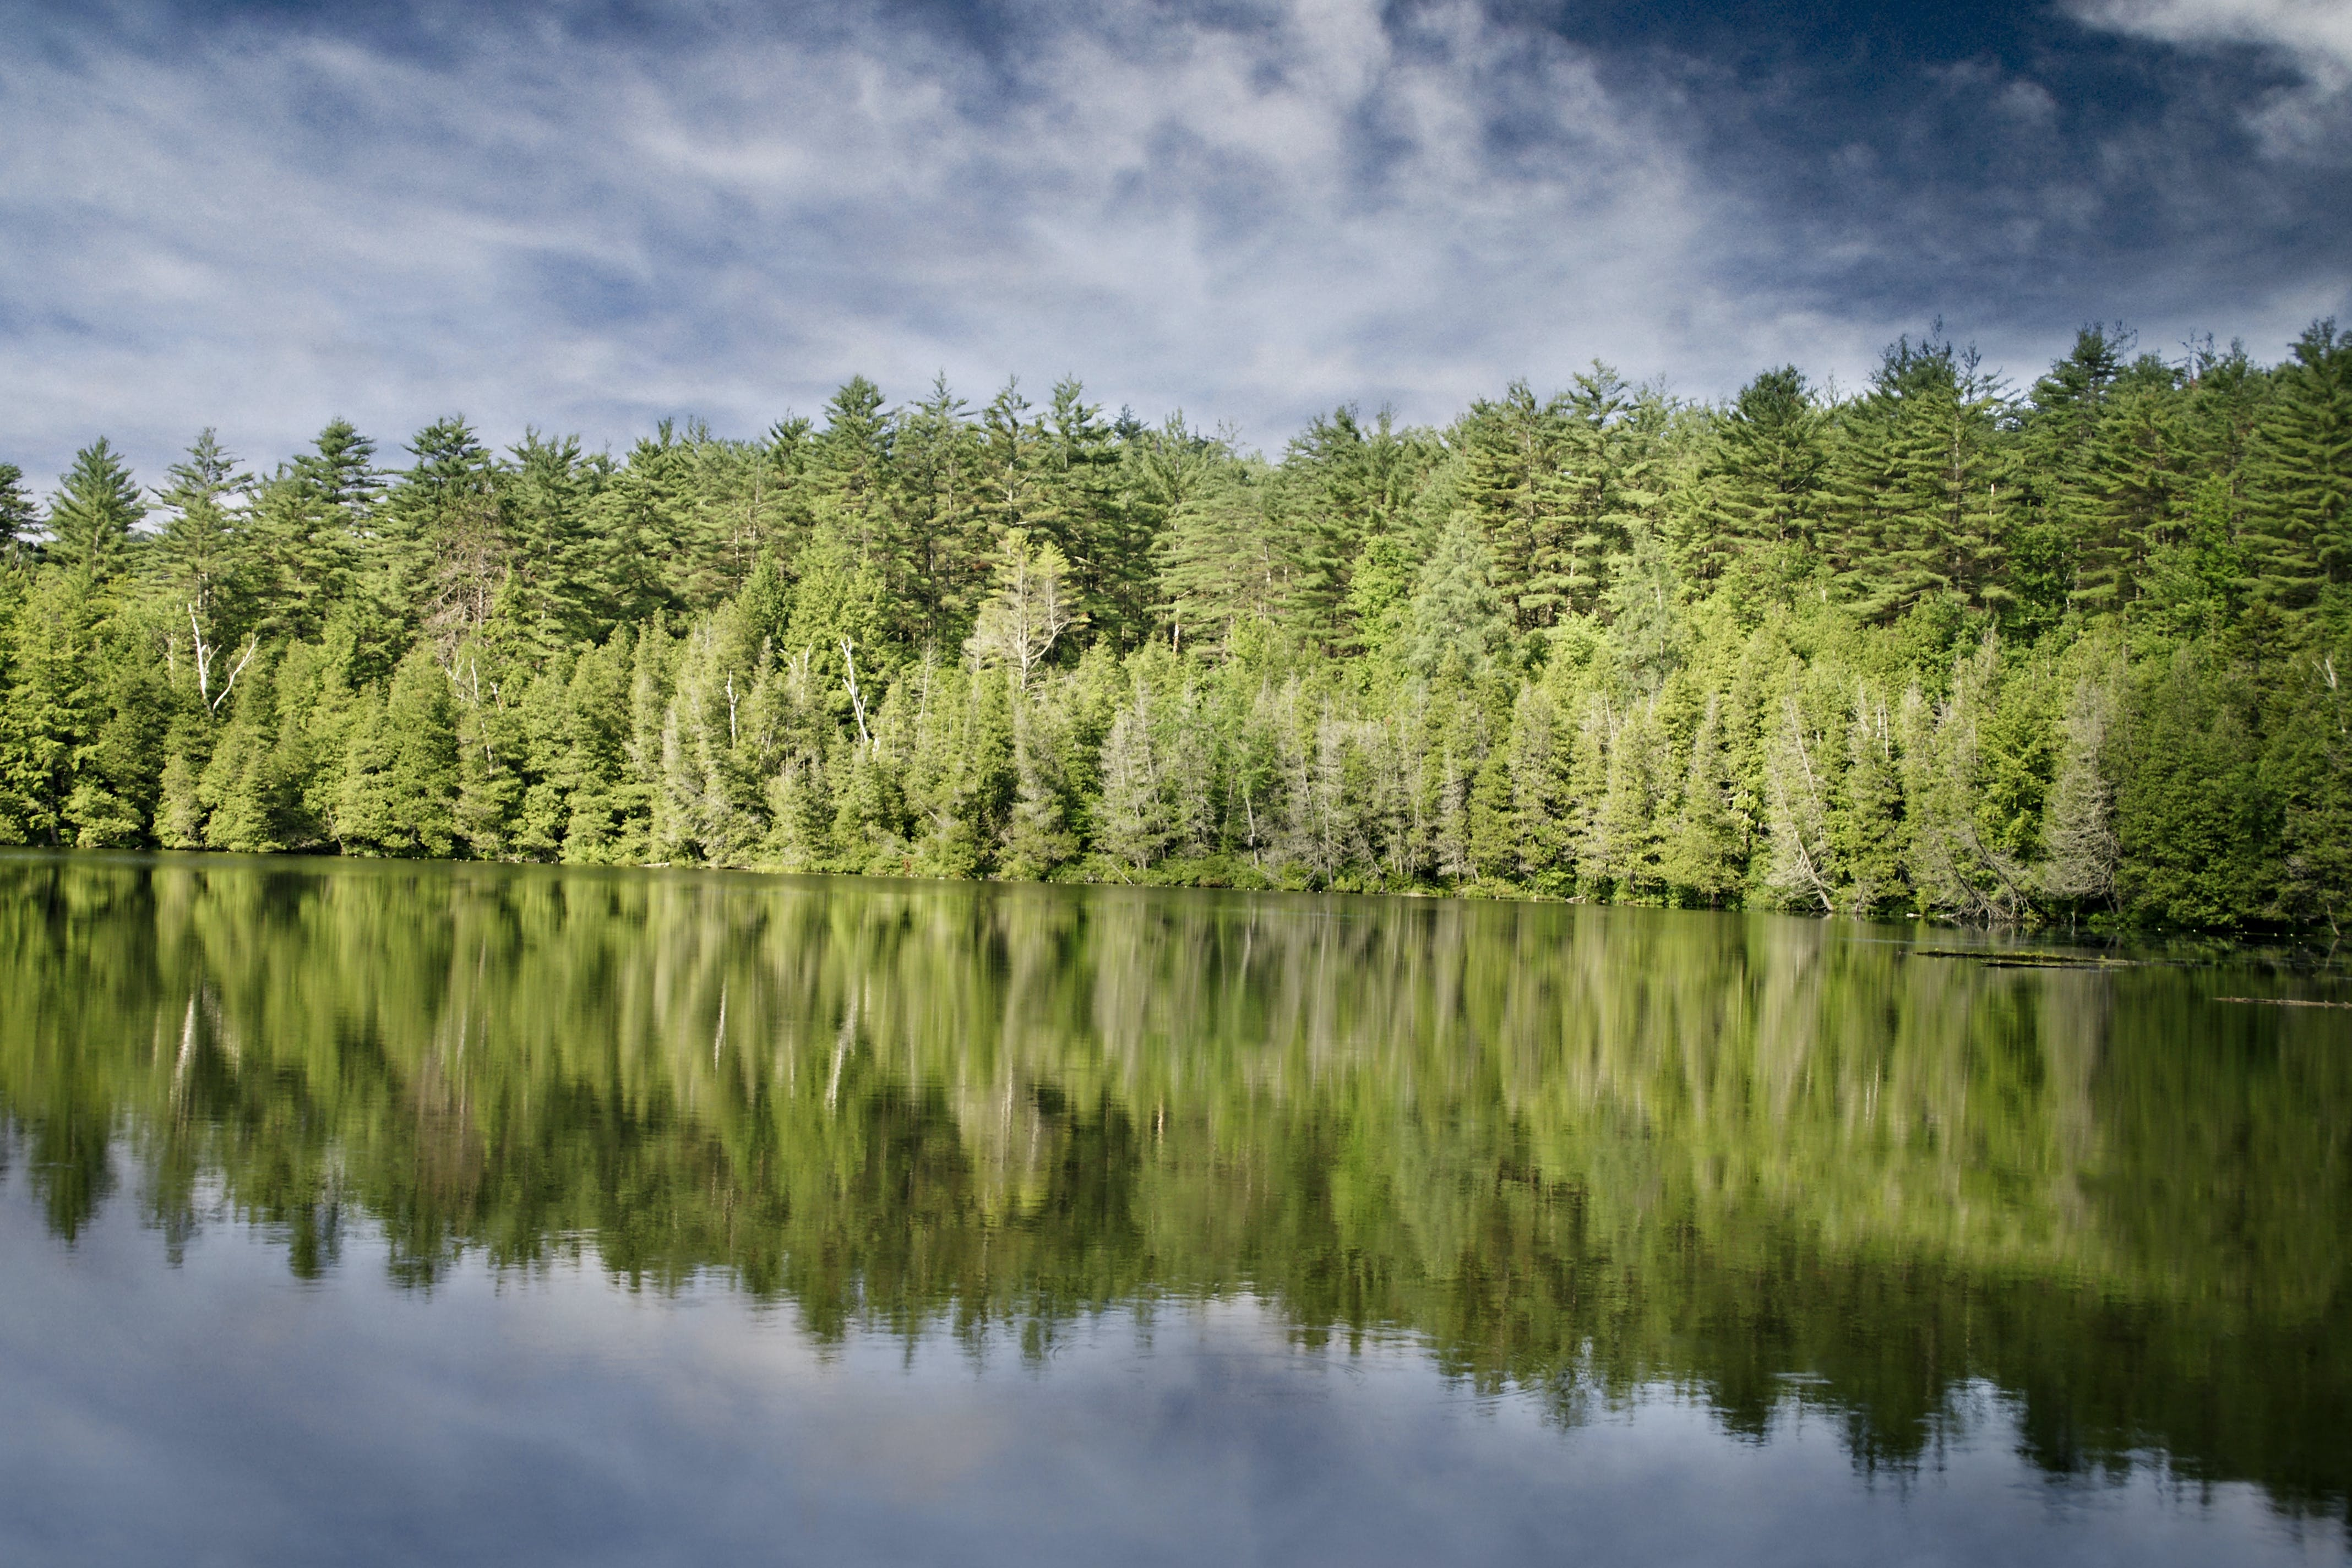 Calm Body of Water Near Green Leafed Trees Under Clouded Sky